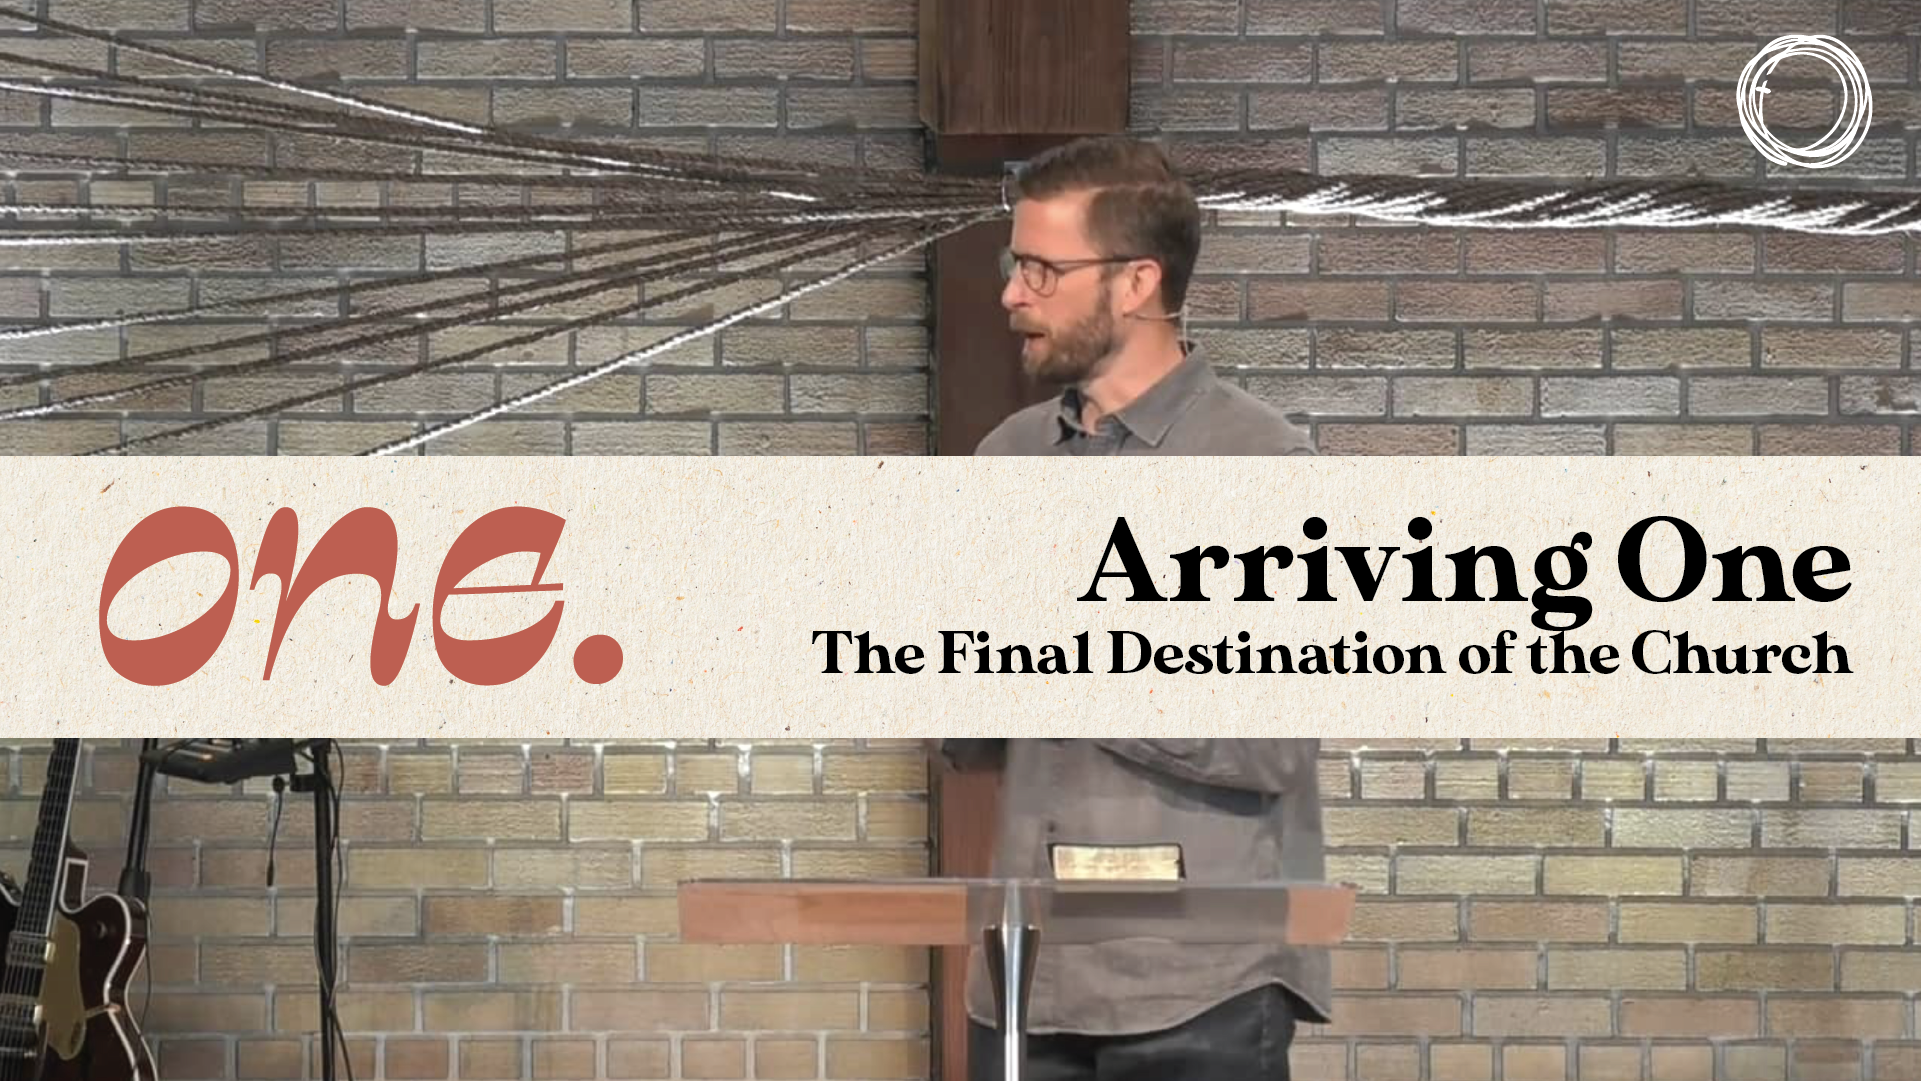 Arriving One: The Final Destination of the Church